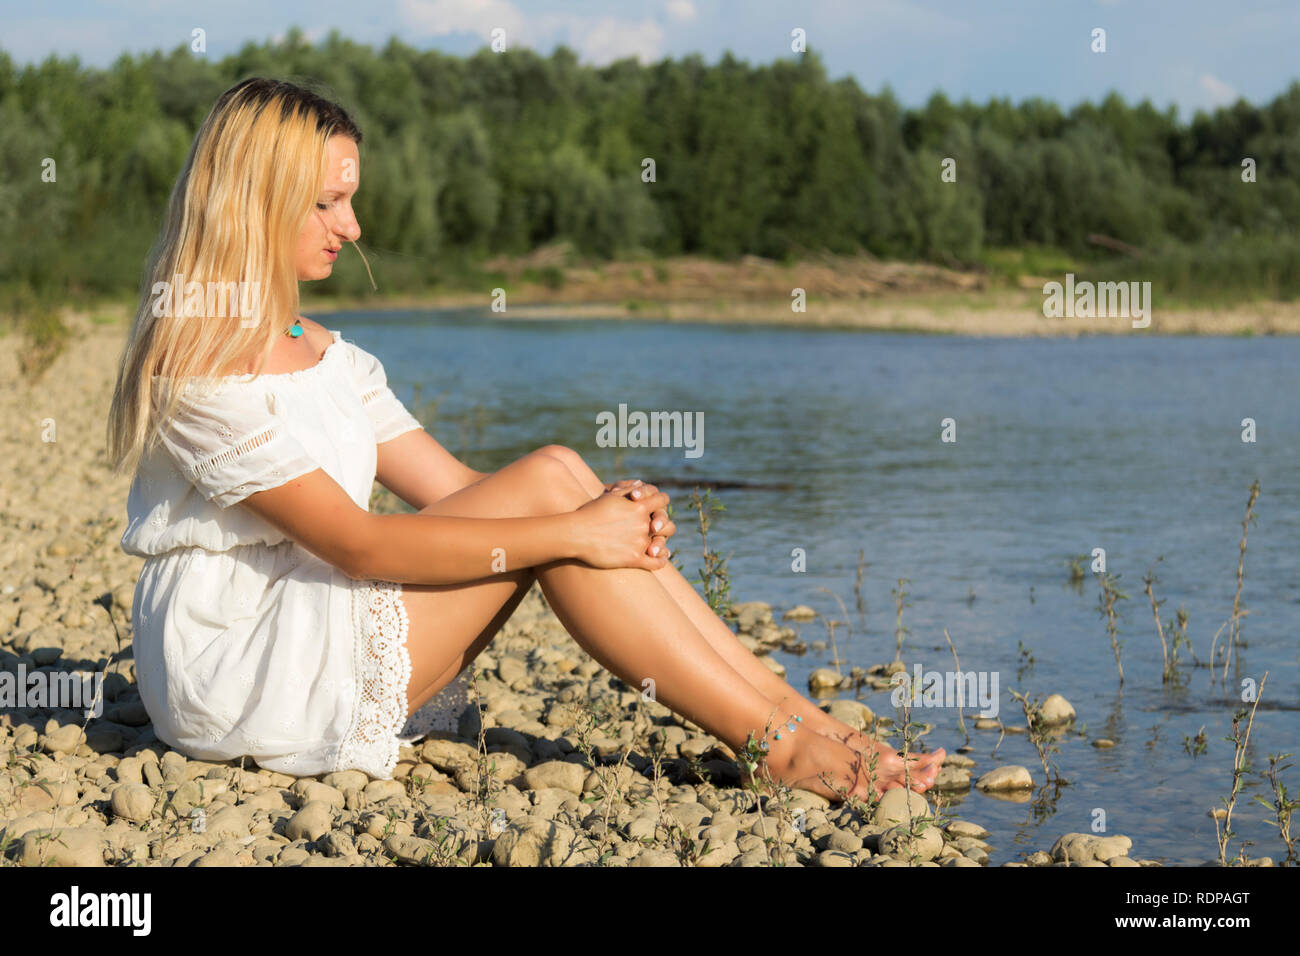 Girl in a short white dress on a gravel bar of the river - Stock Image